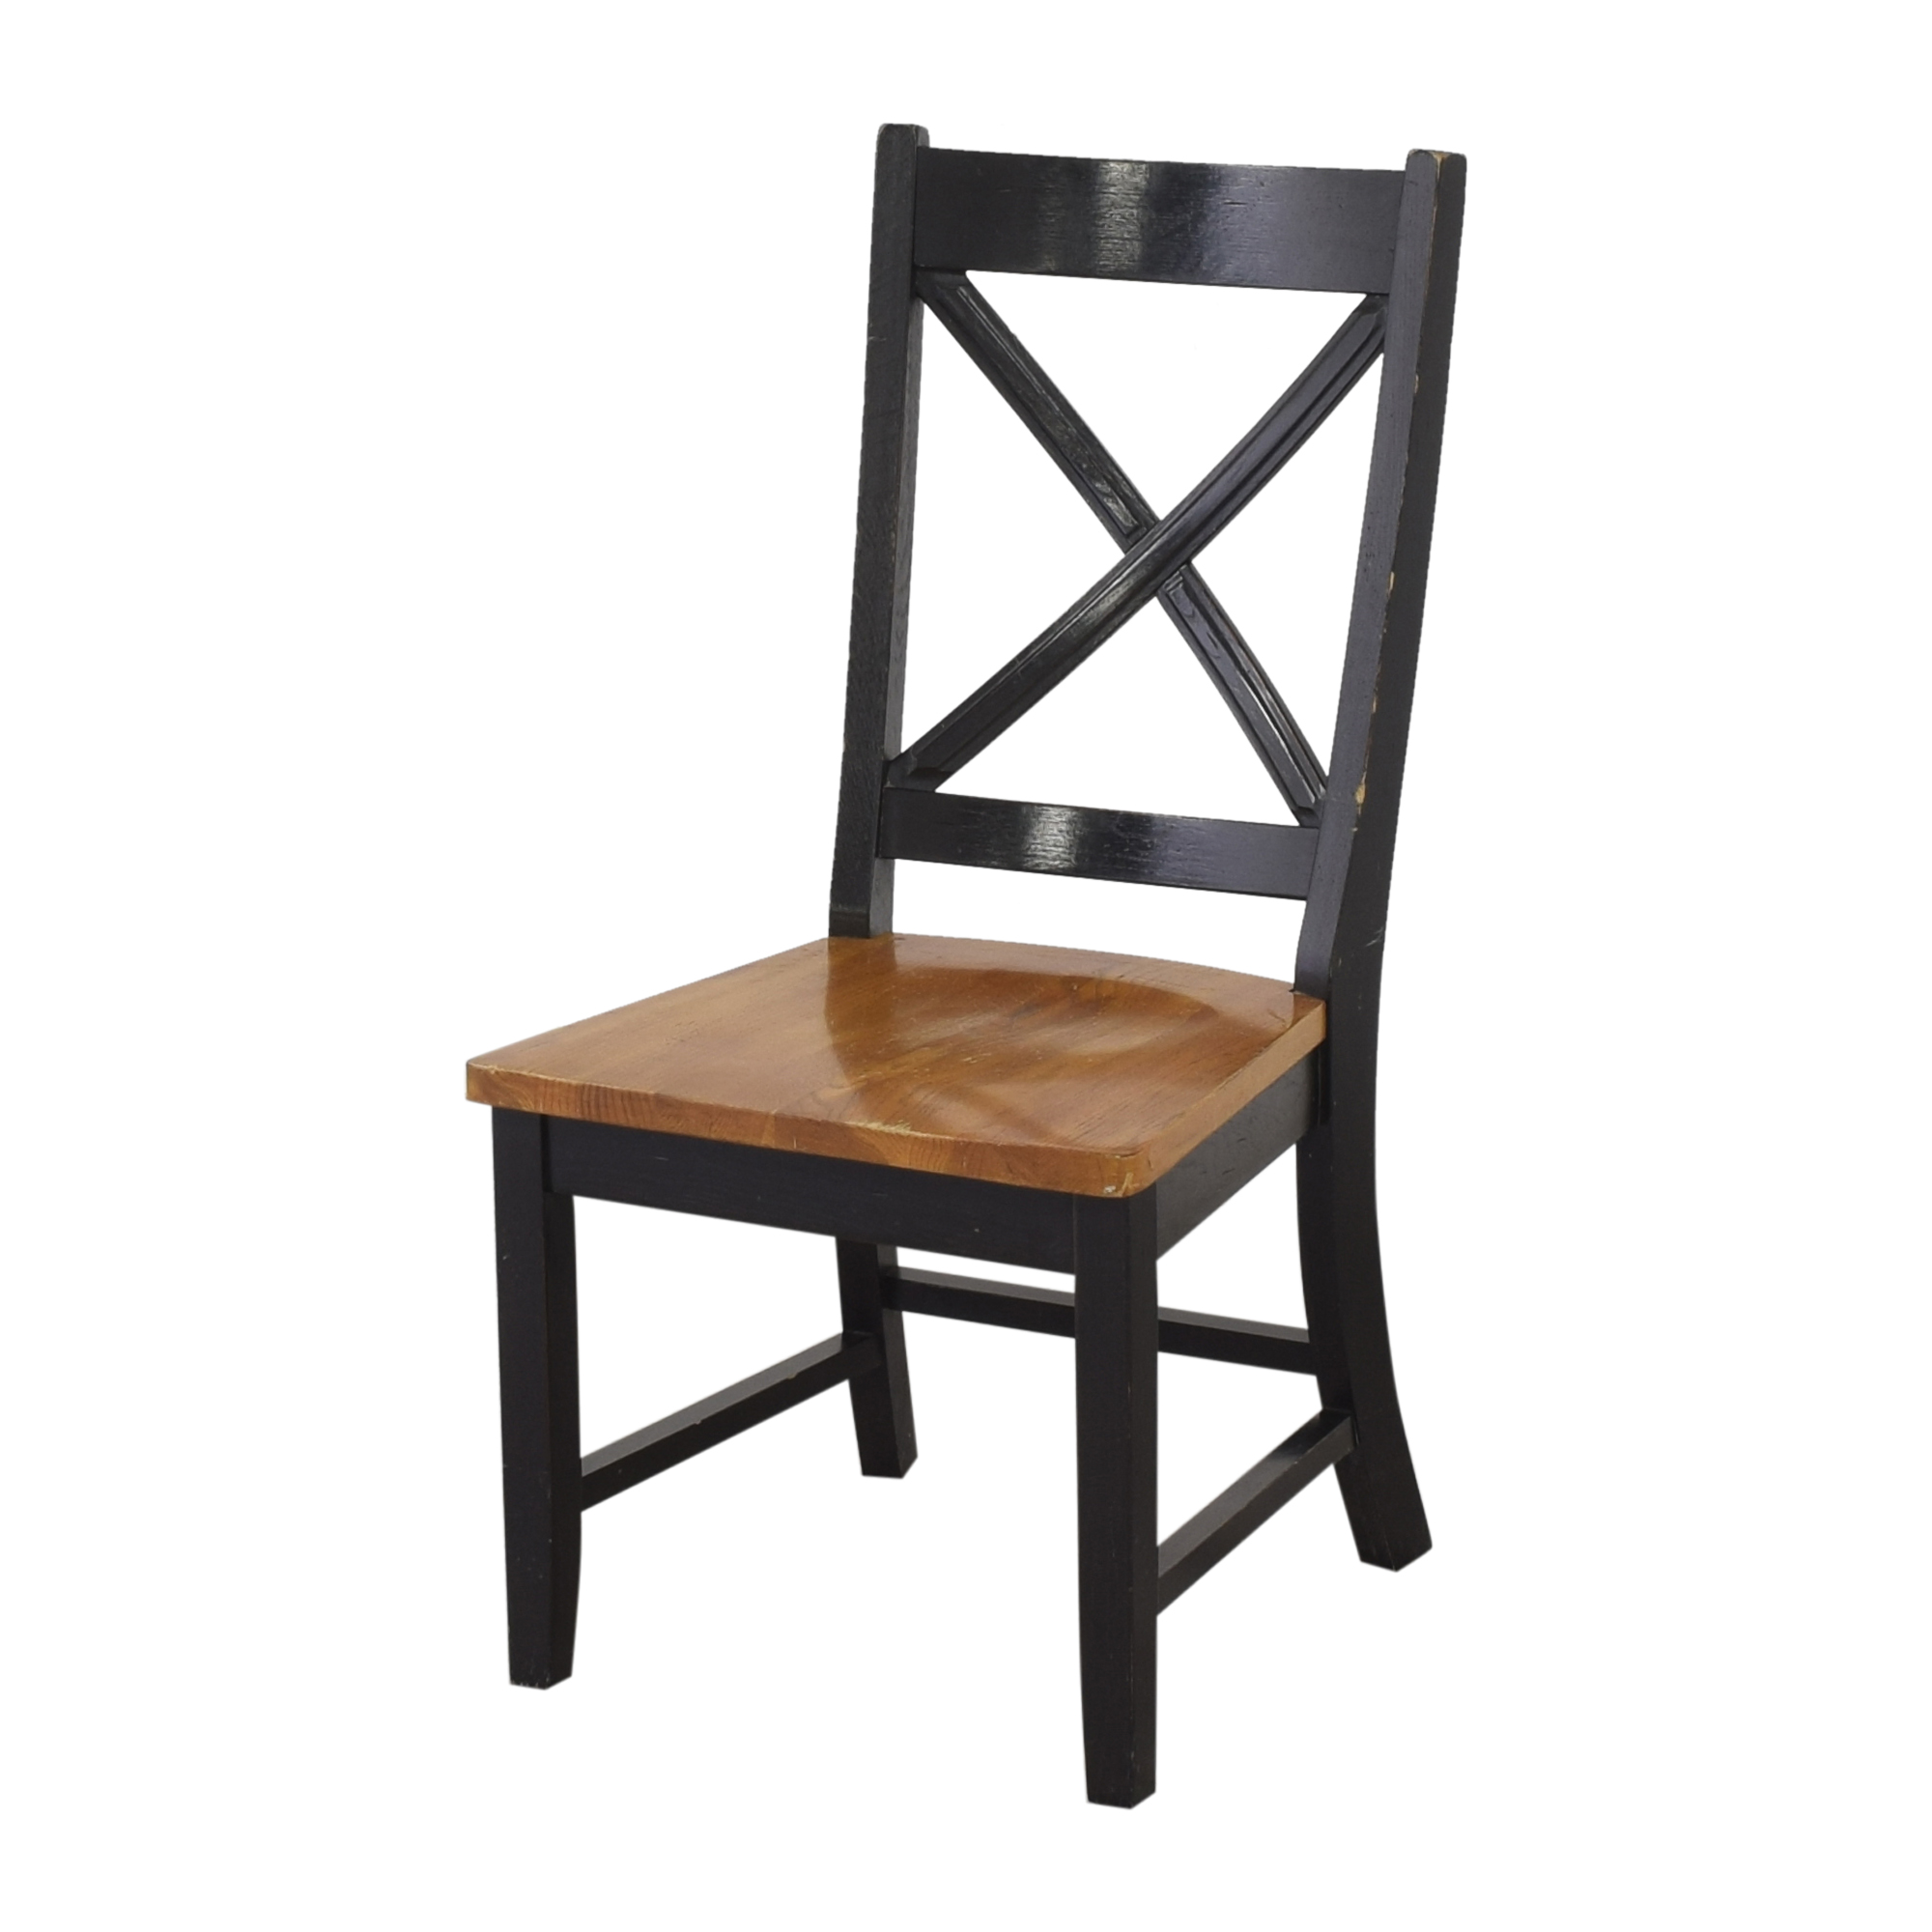 Havertys Havertys Timber Ridge Dining Chairs discount